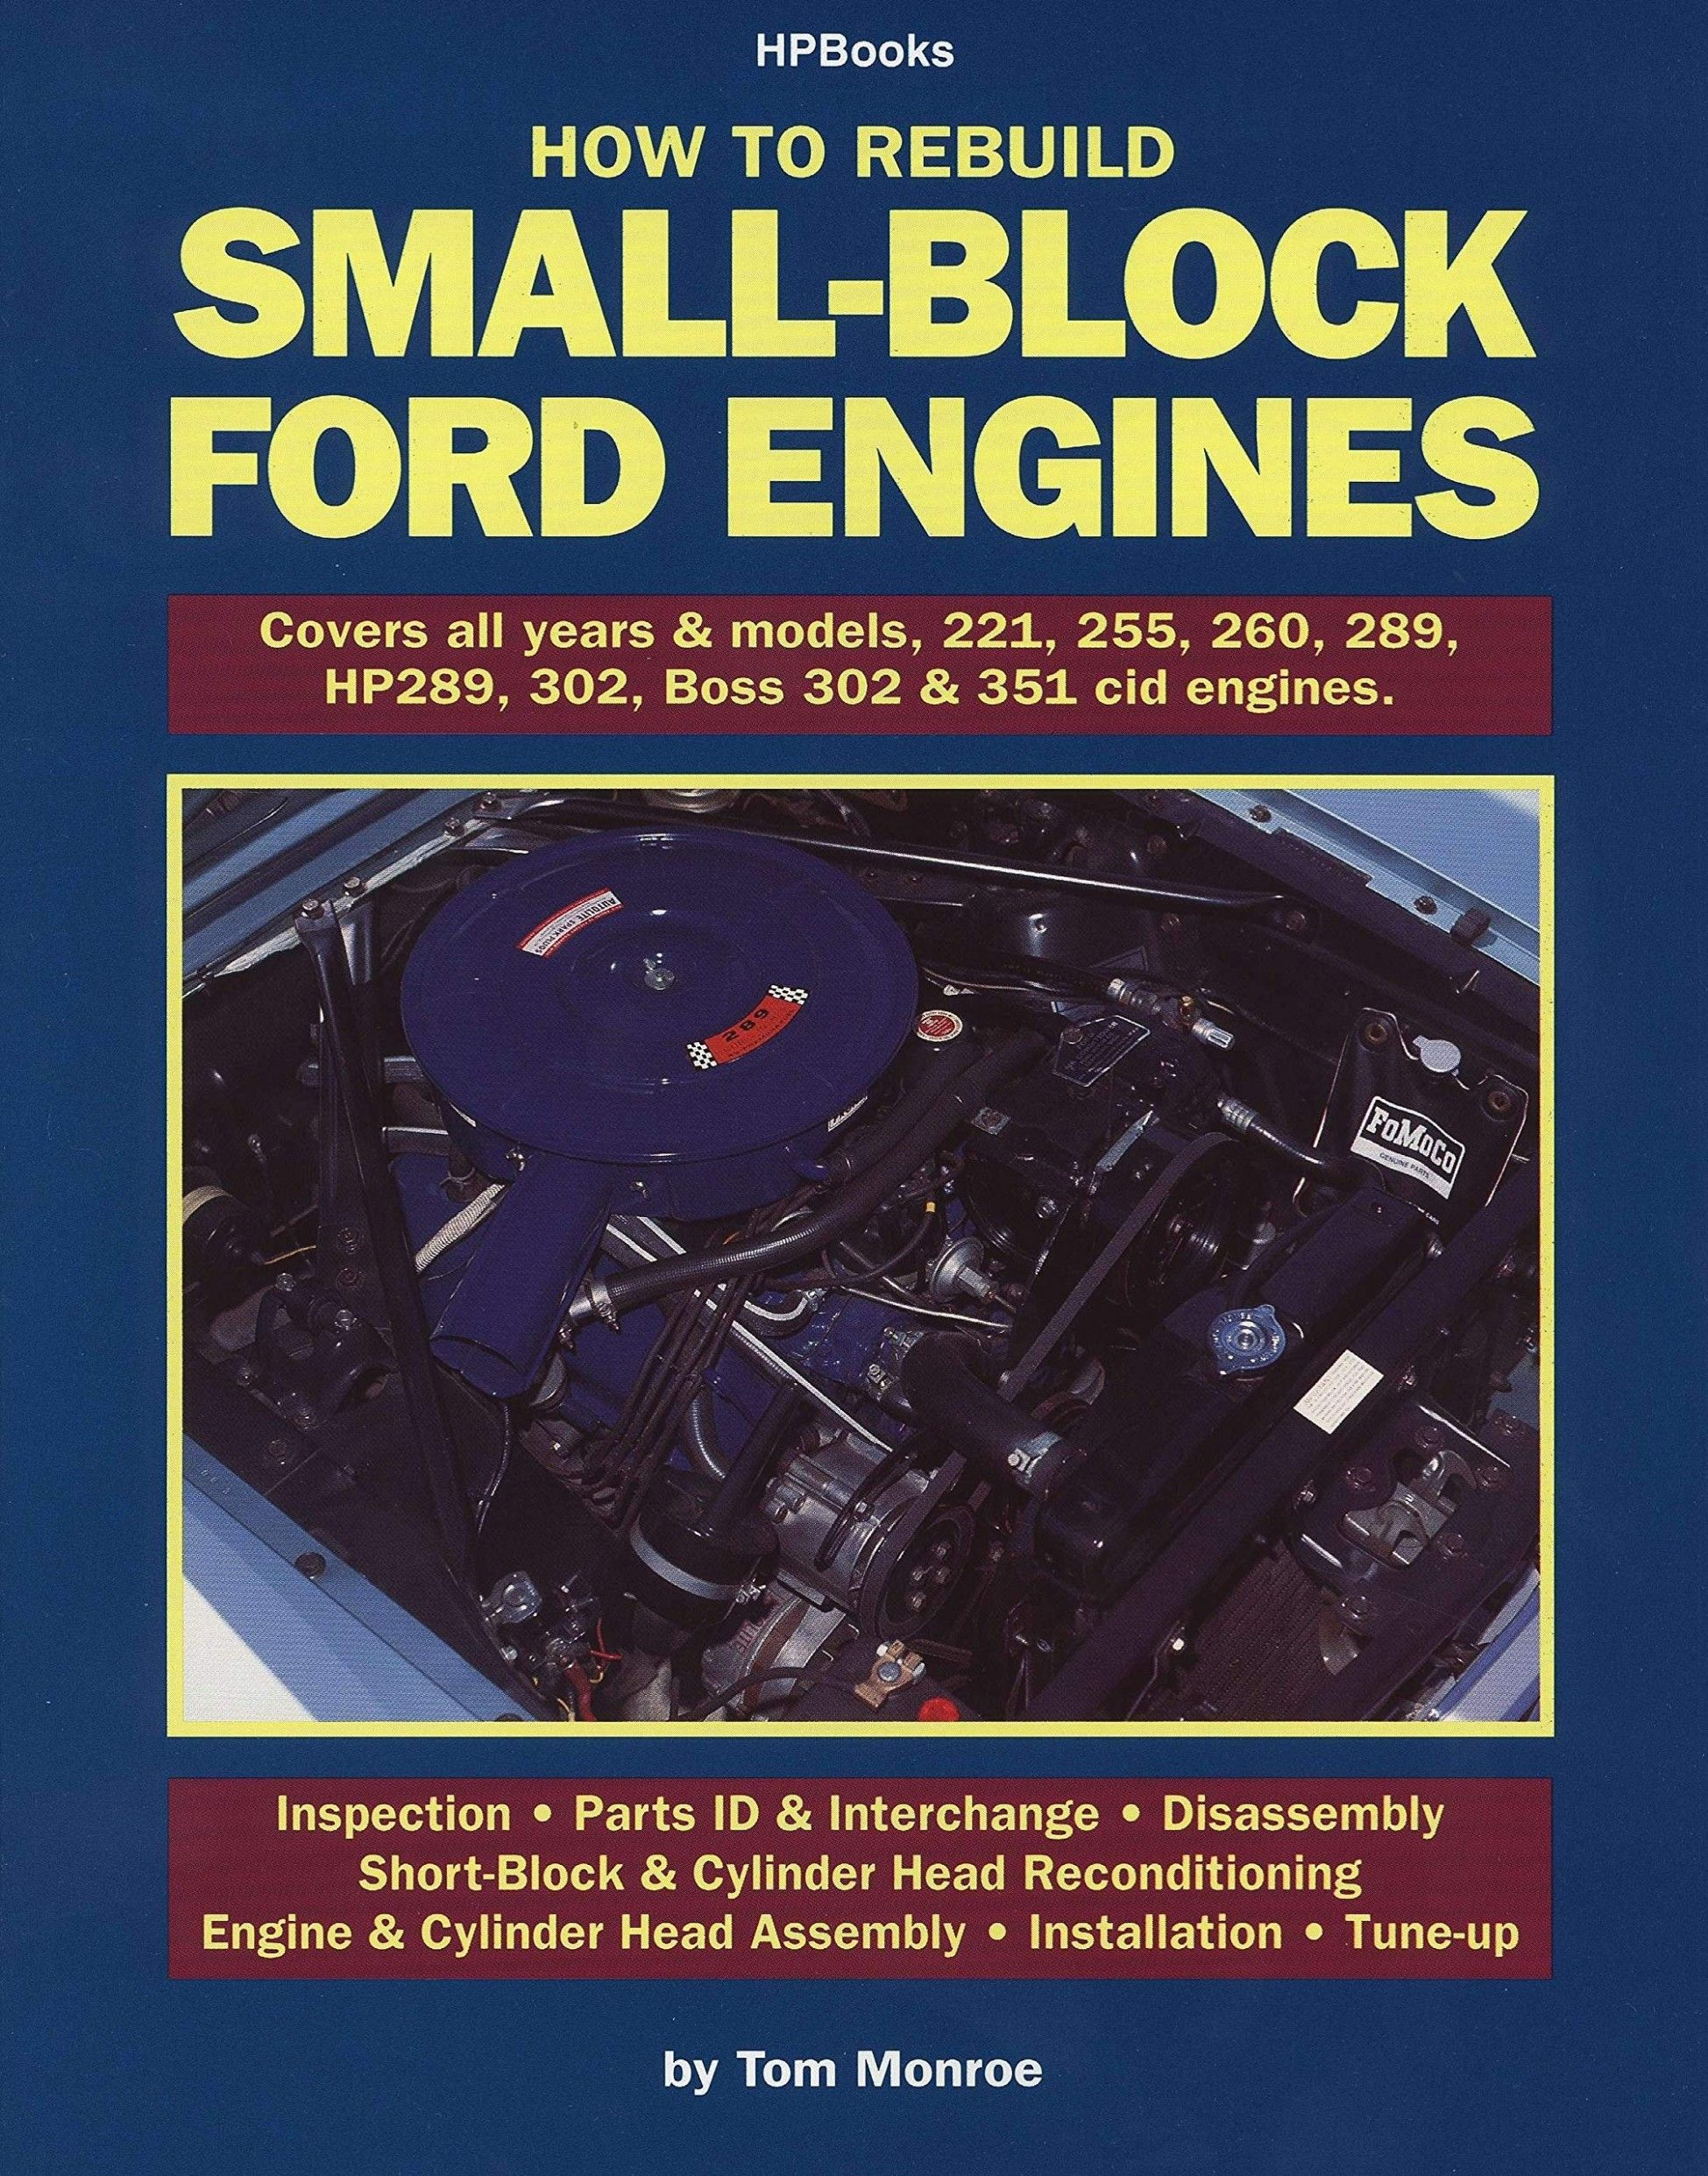 Engine Tune Up Block Diagram In 2020 Engine Tune Ford Engineering